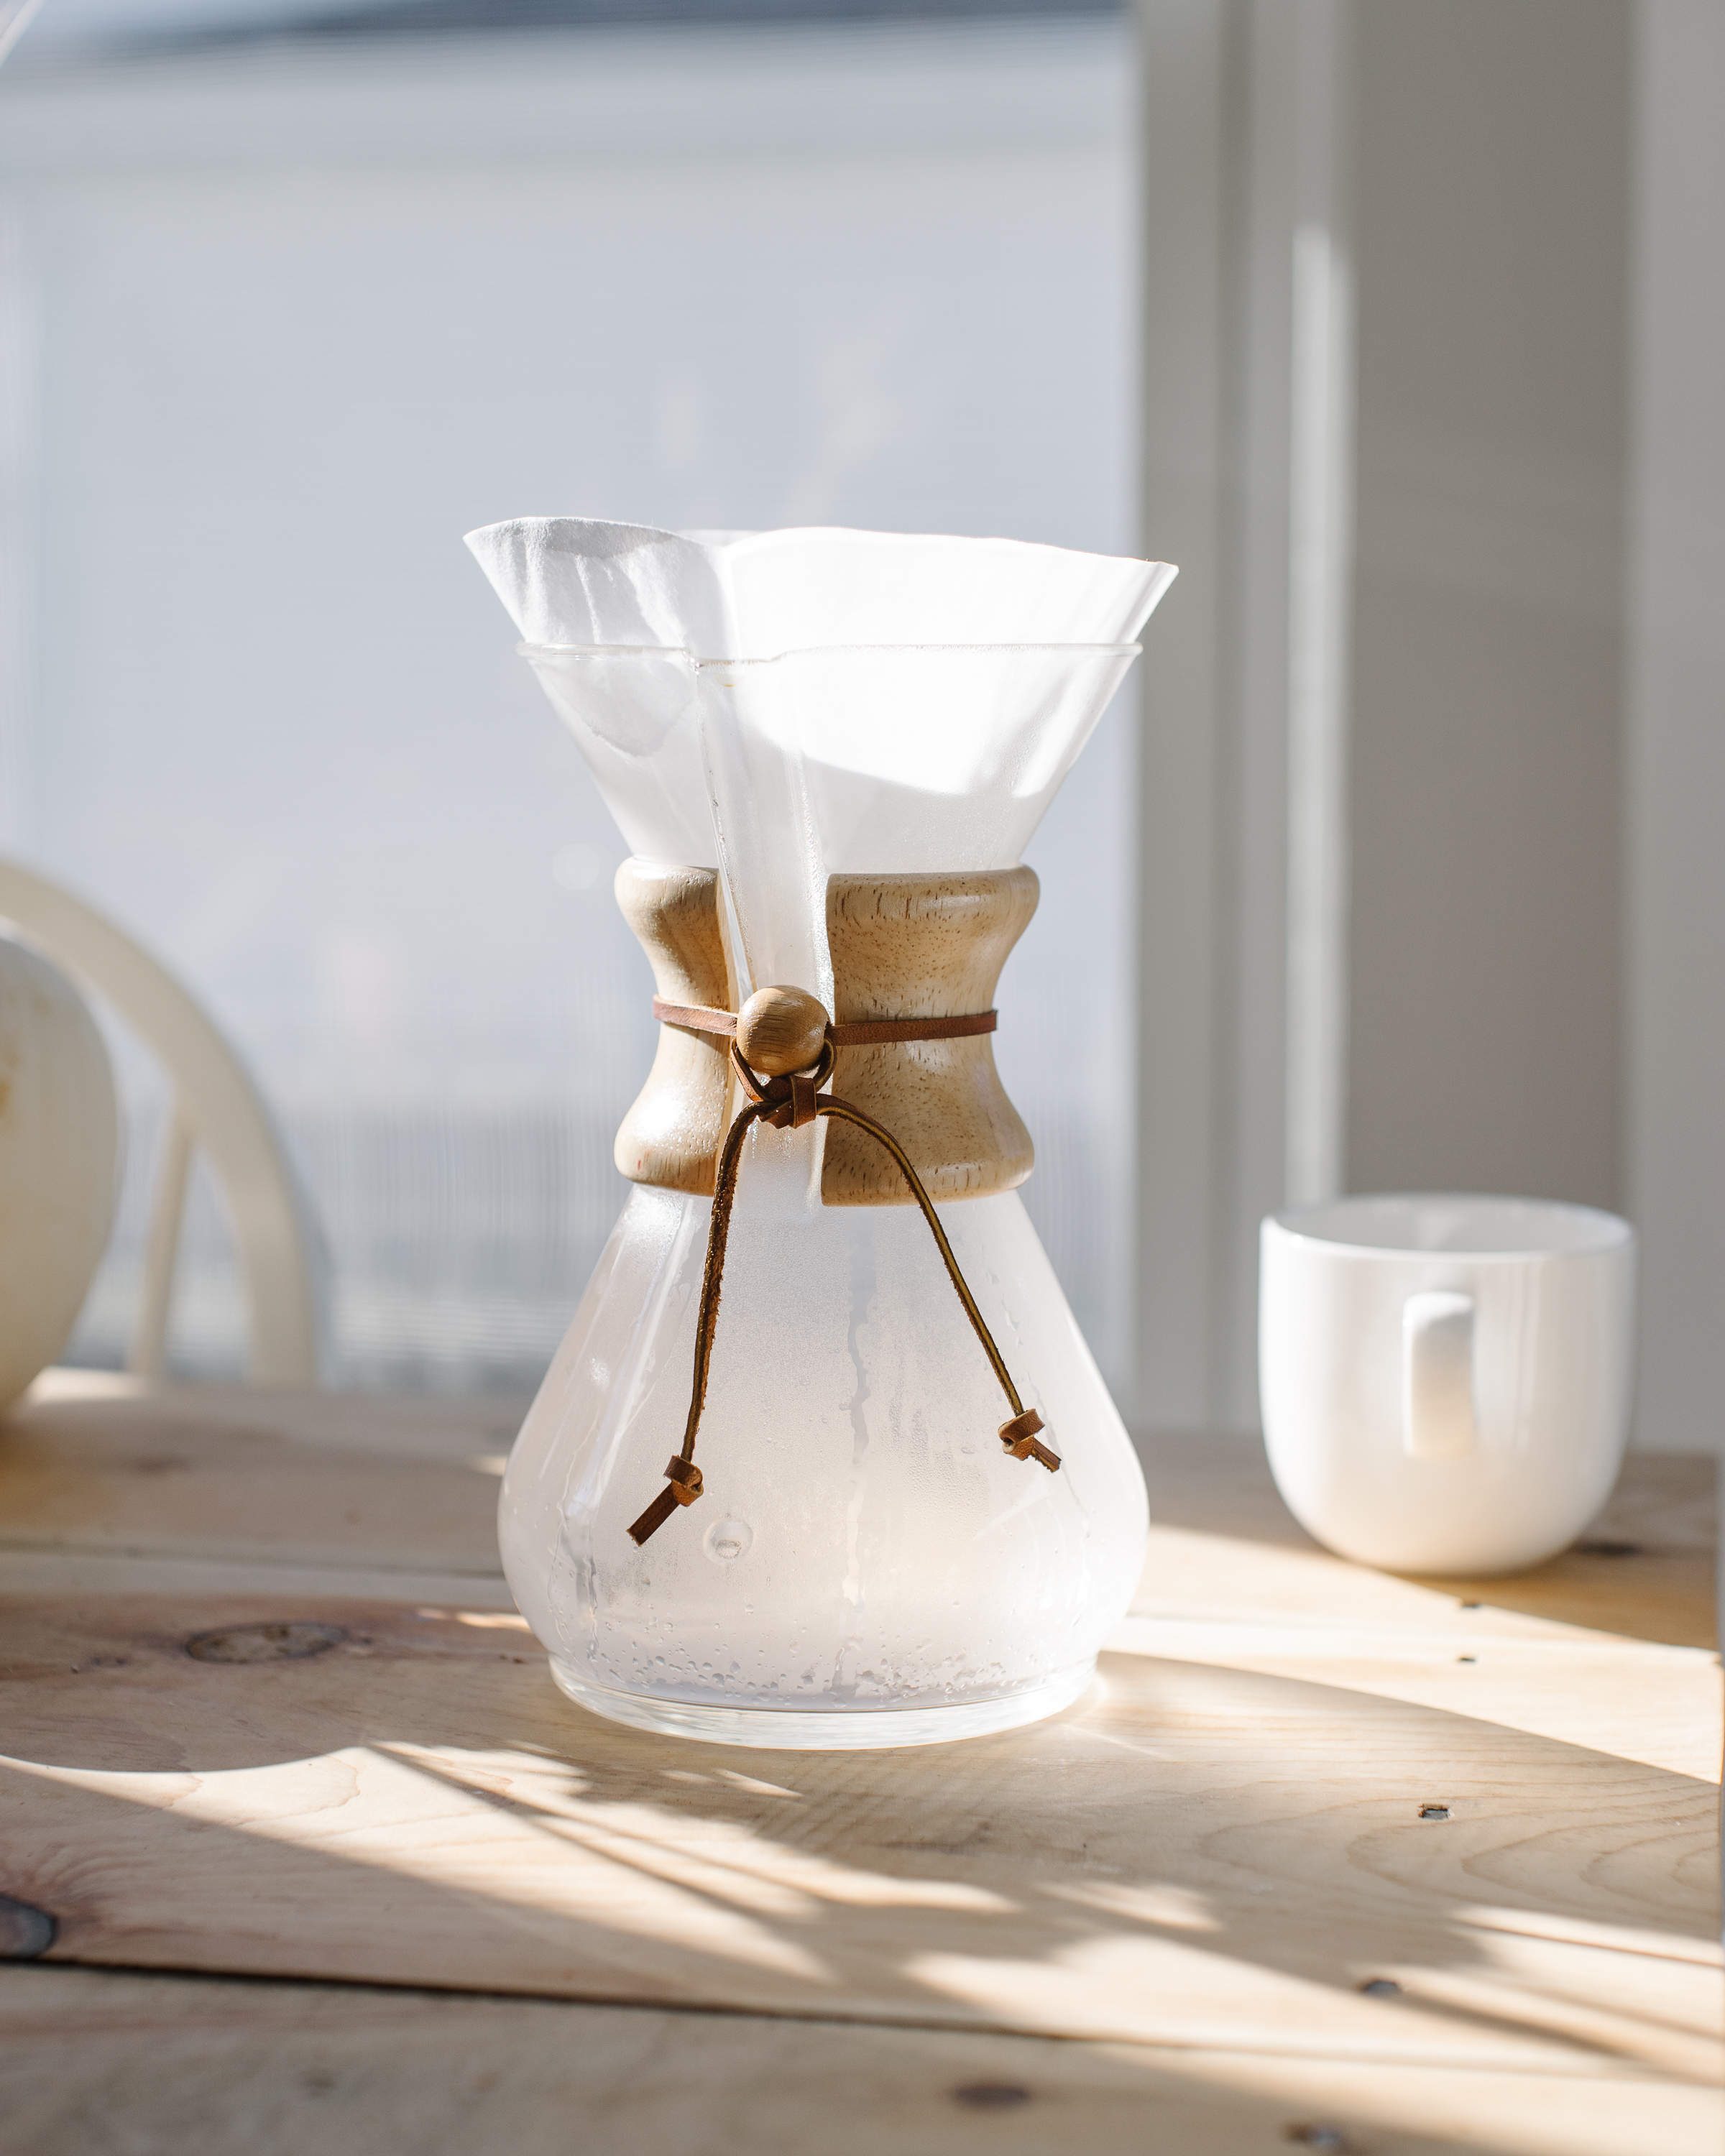 Jared-Lank-Pour-Over-Coffee-Photography